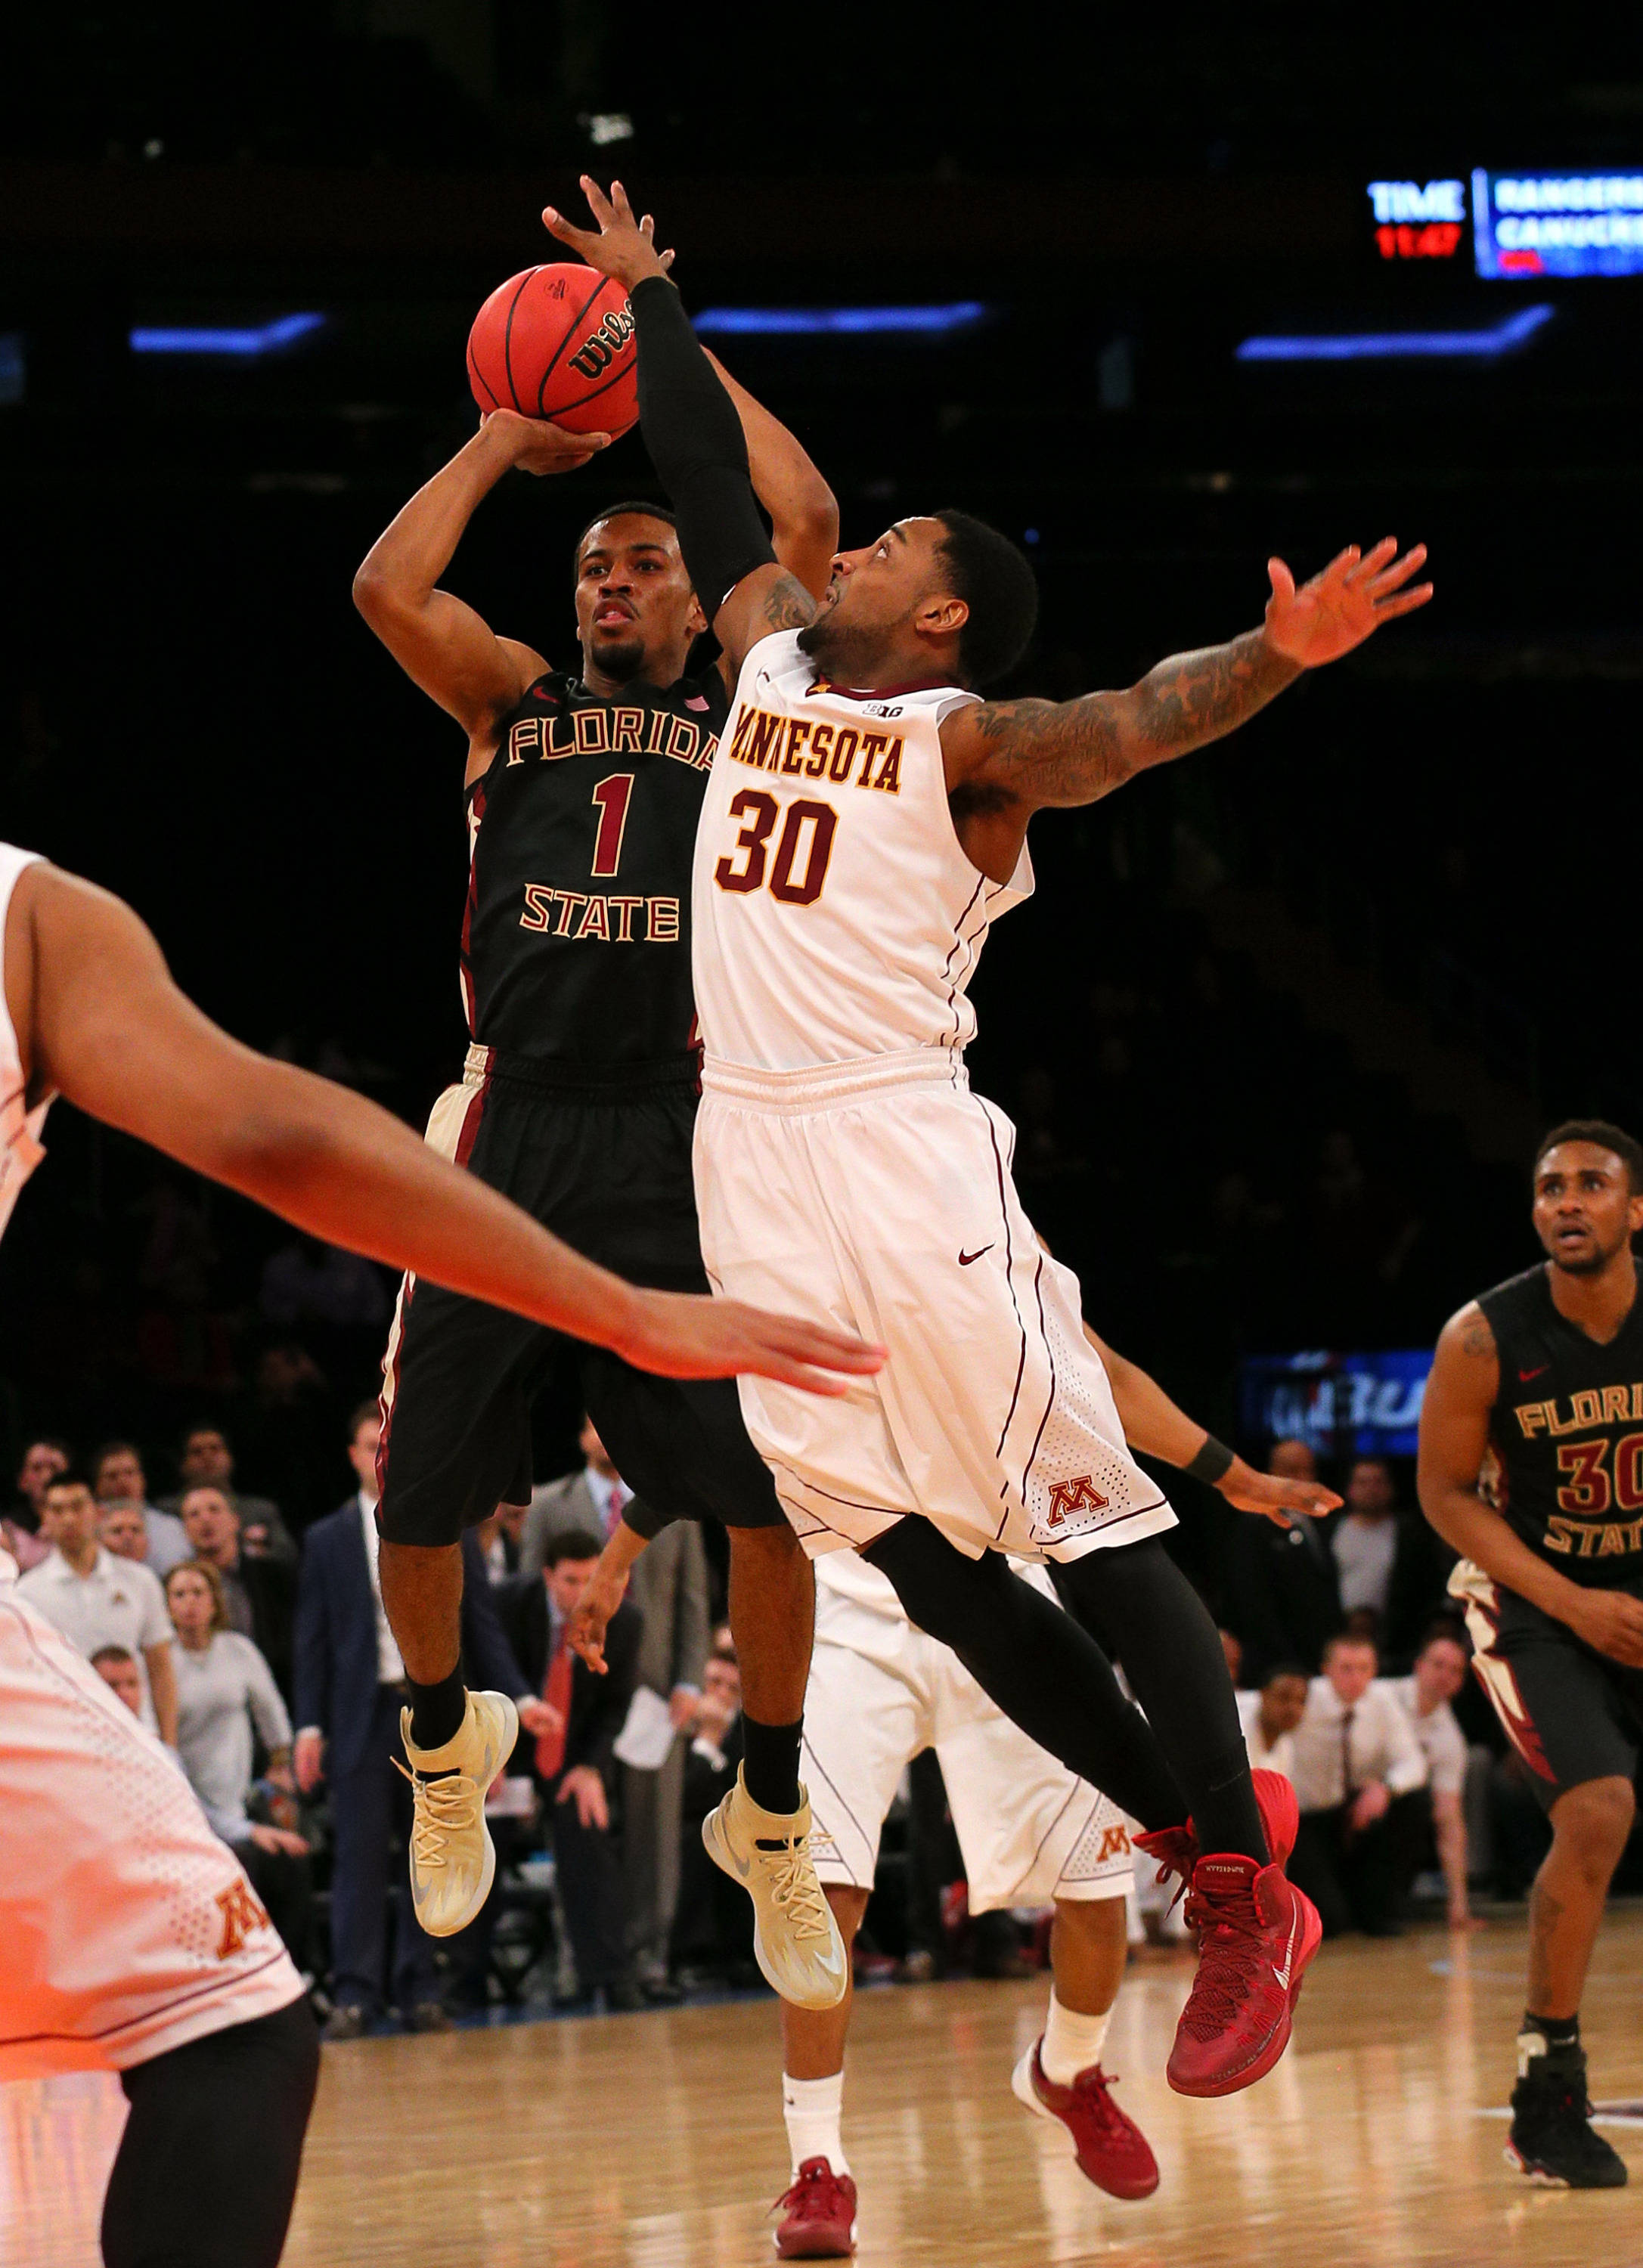 Apr 1, 2014; New York, NY, USA; Florida State Seminoles guard Devon Bookert (1) hits a game tying three-point shot defended by Minnesota Golden Gophers guard Malik Smith (30) during the second half at Madison Square Garden. The Minnesota Golden Gophers defeated the Florida State Seminoles 67-64 in overtime. Mandatory Credit: Adam Hunger-USA TODAY Sports